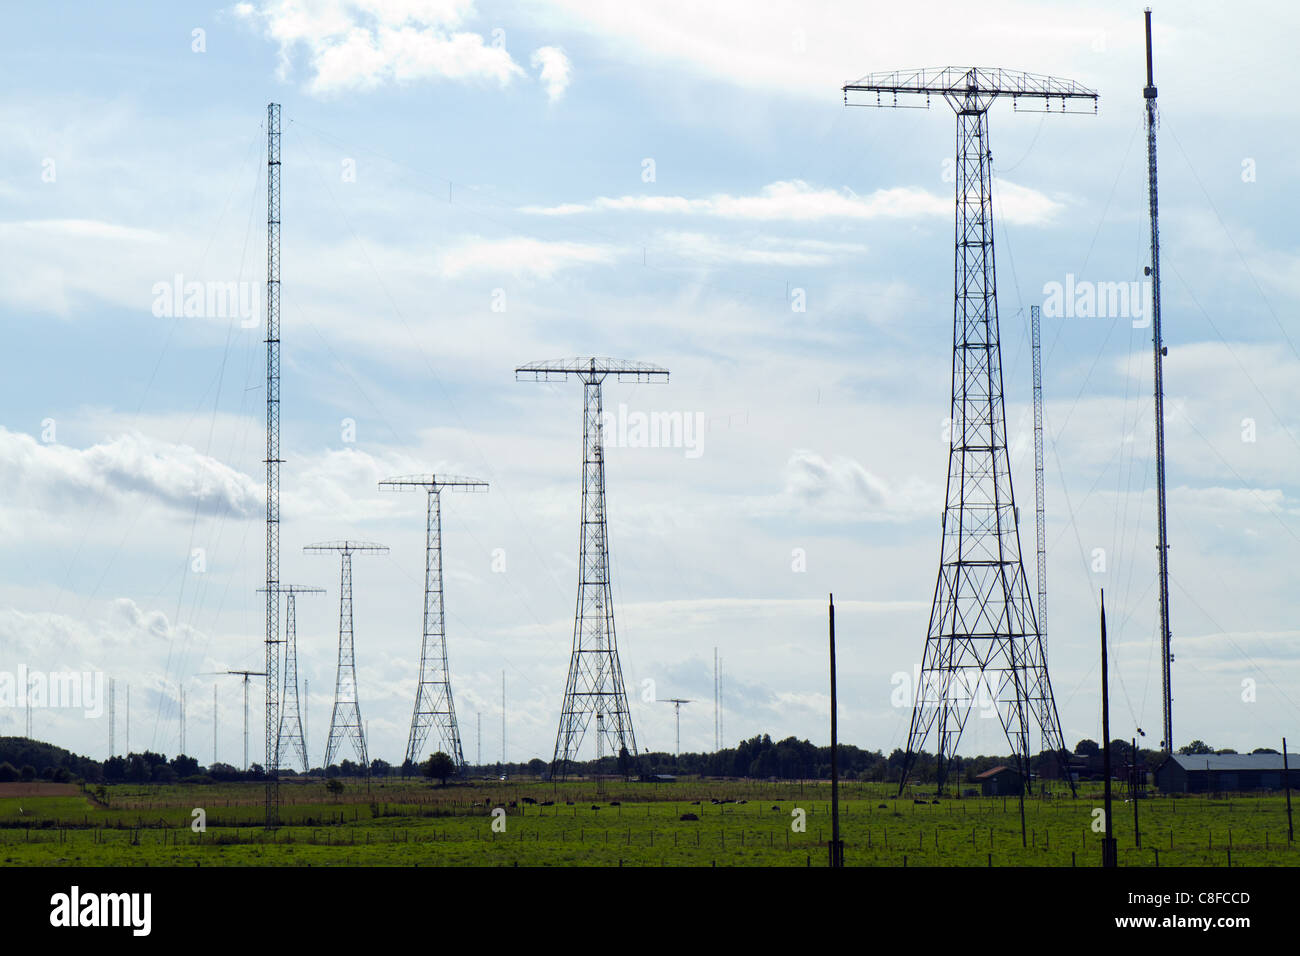 Vlf Transmitter Stock Photos & Vlf Transmitter Stock Images